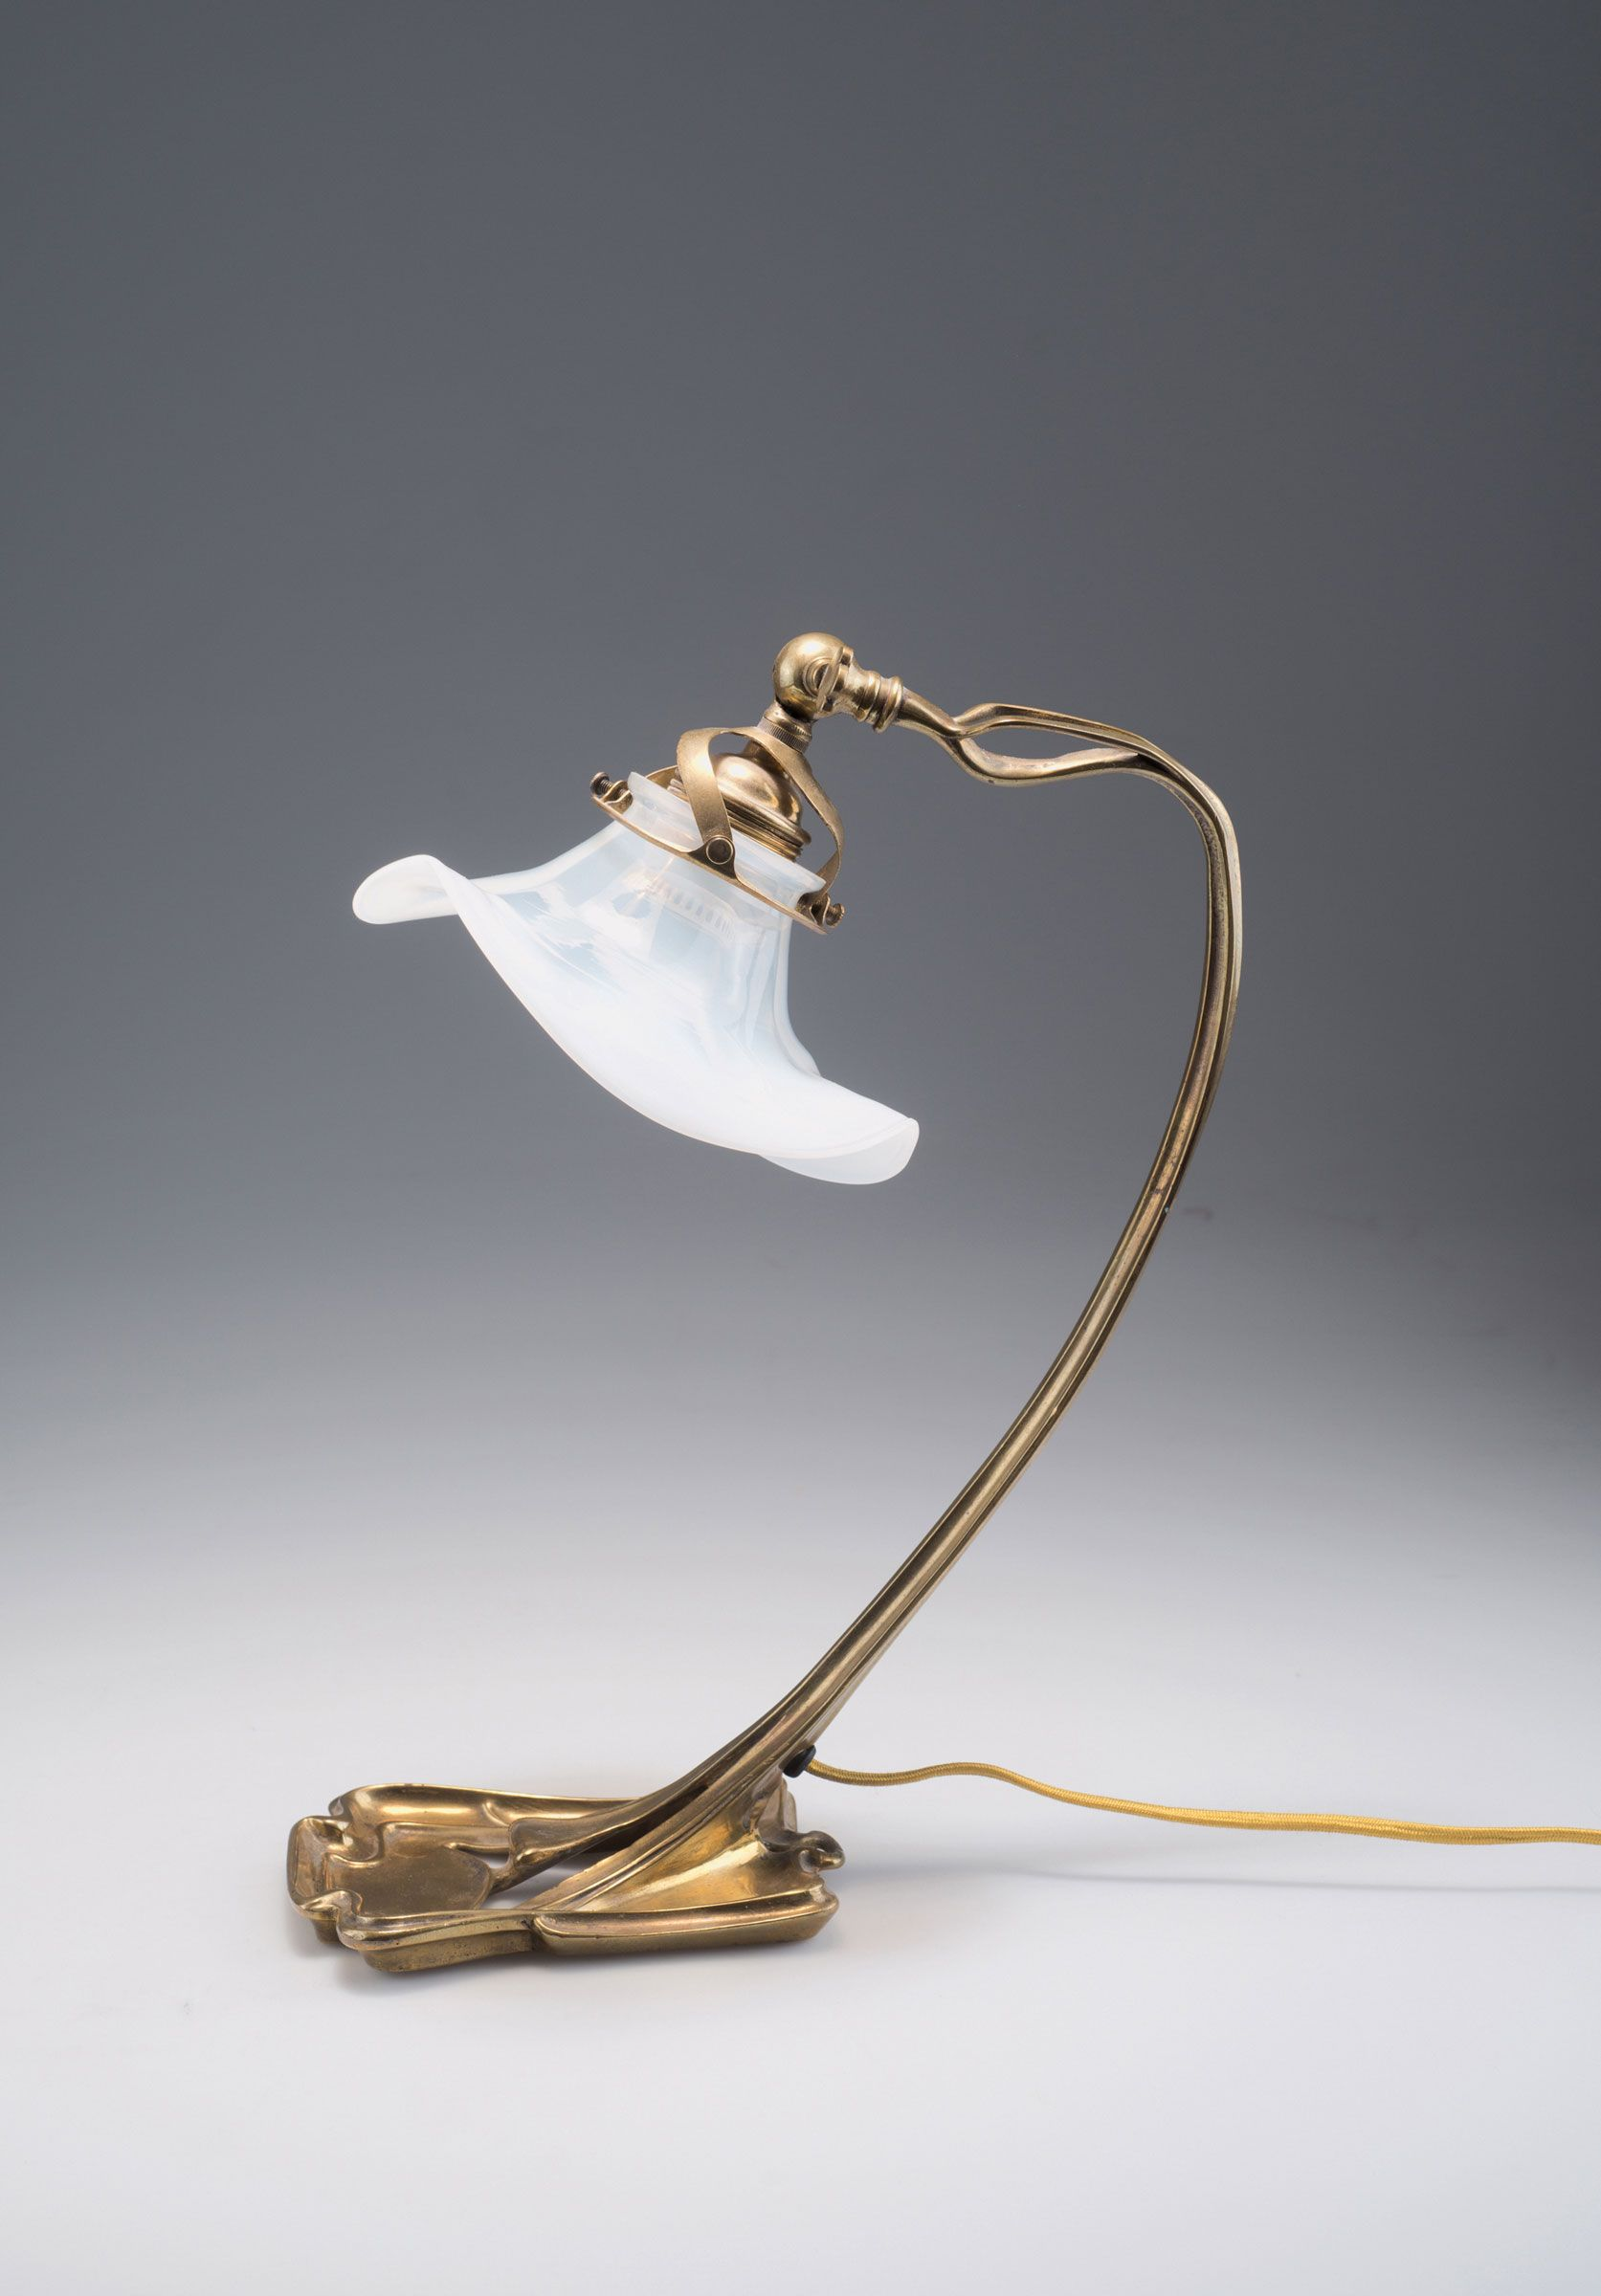 Munich. Table light, c1900. H. 34 cm. Shade designed by Richard Riemerschmid. Cased glass, clear and milky white. Brass base. Electrified.